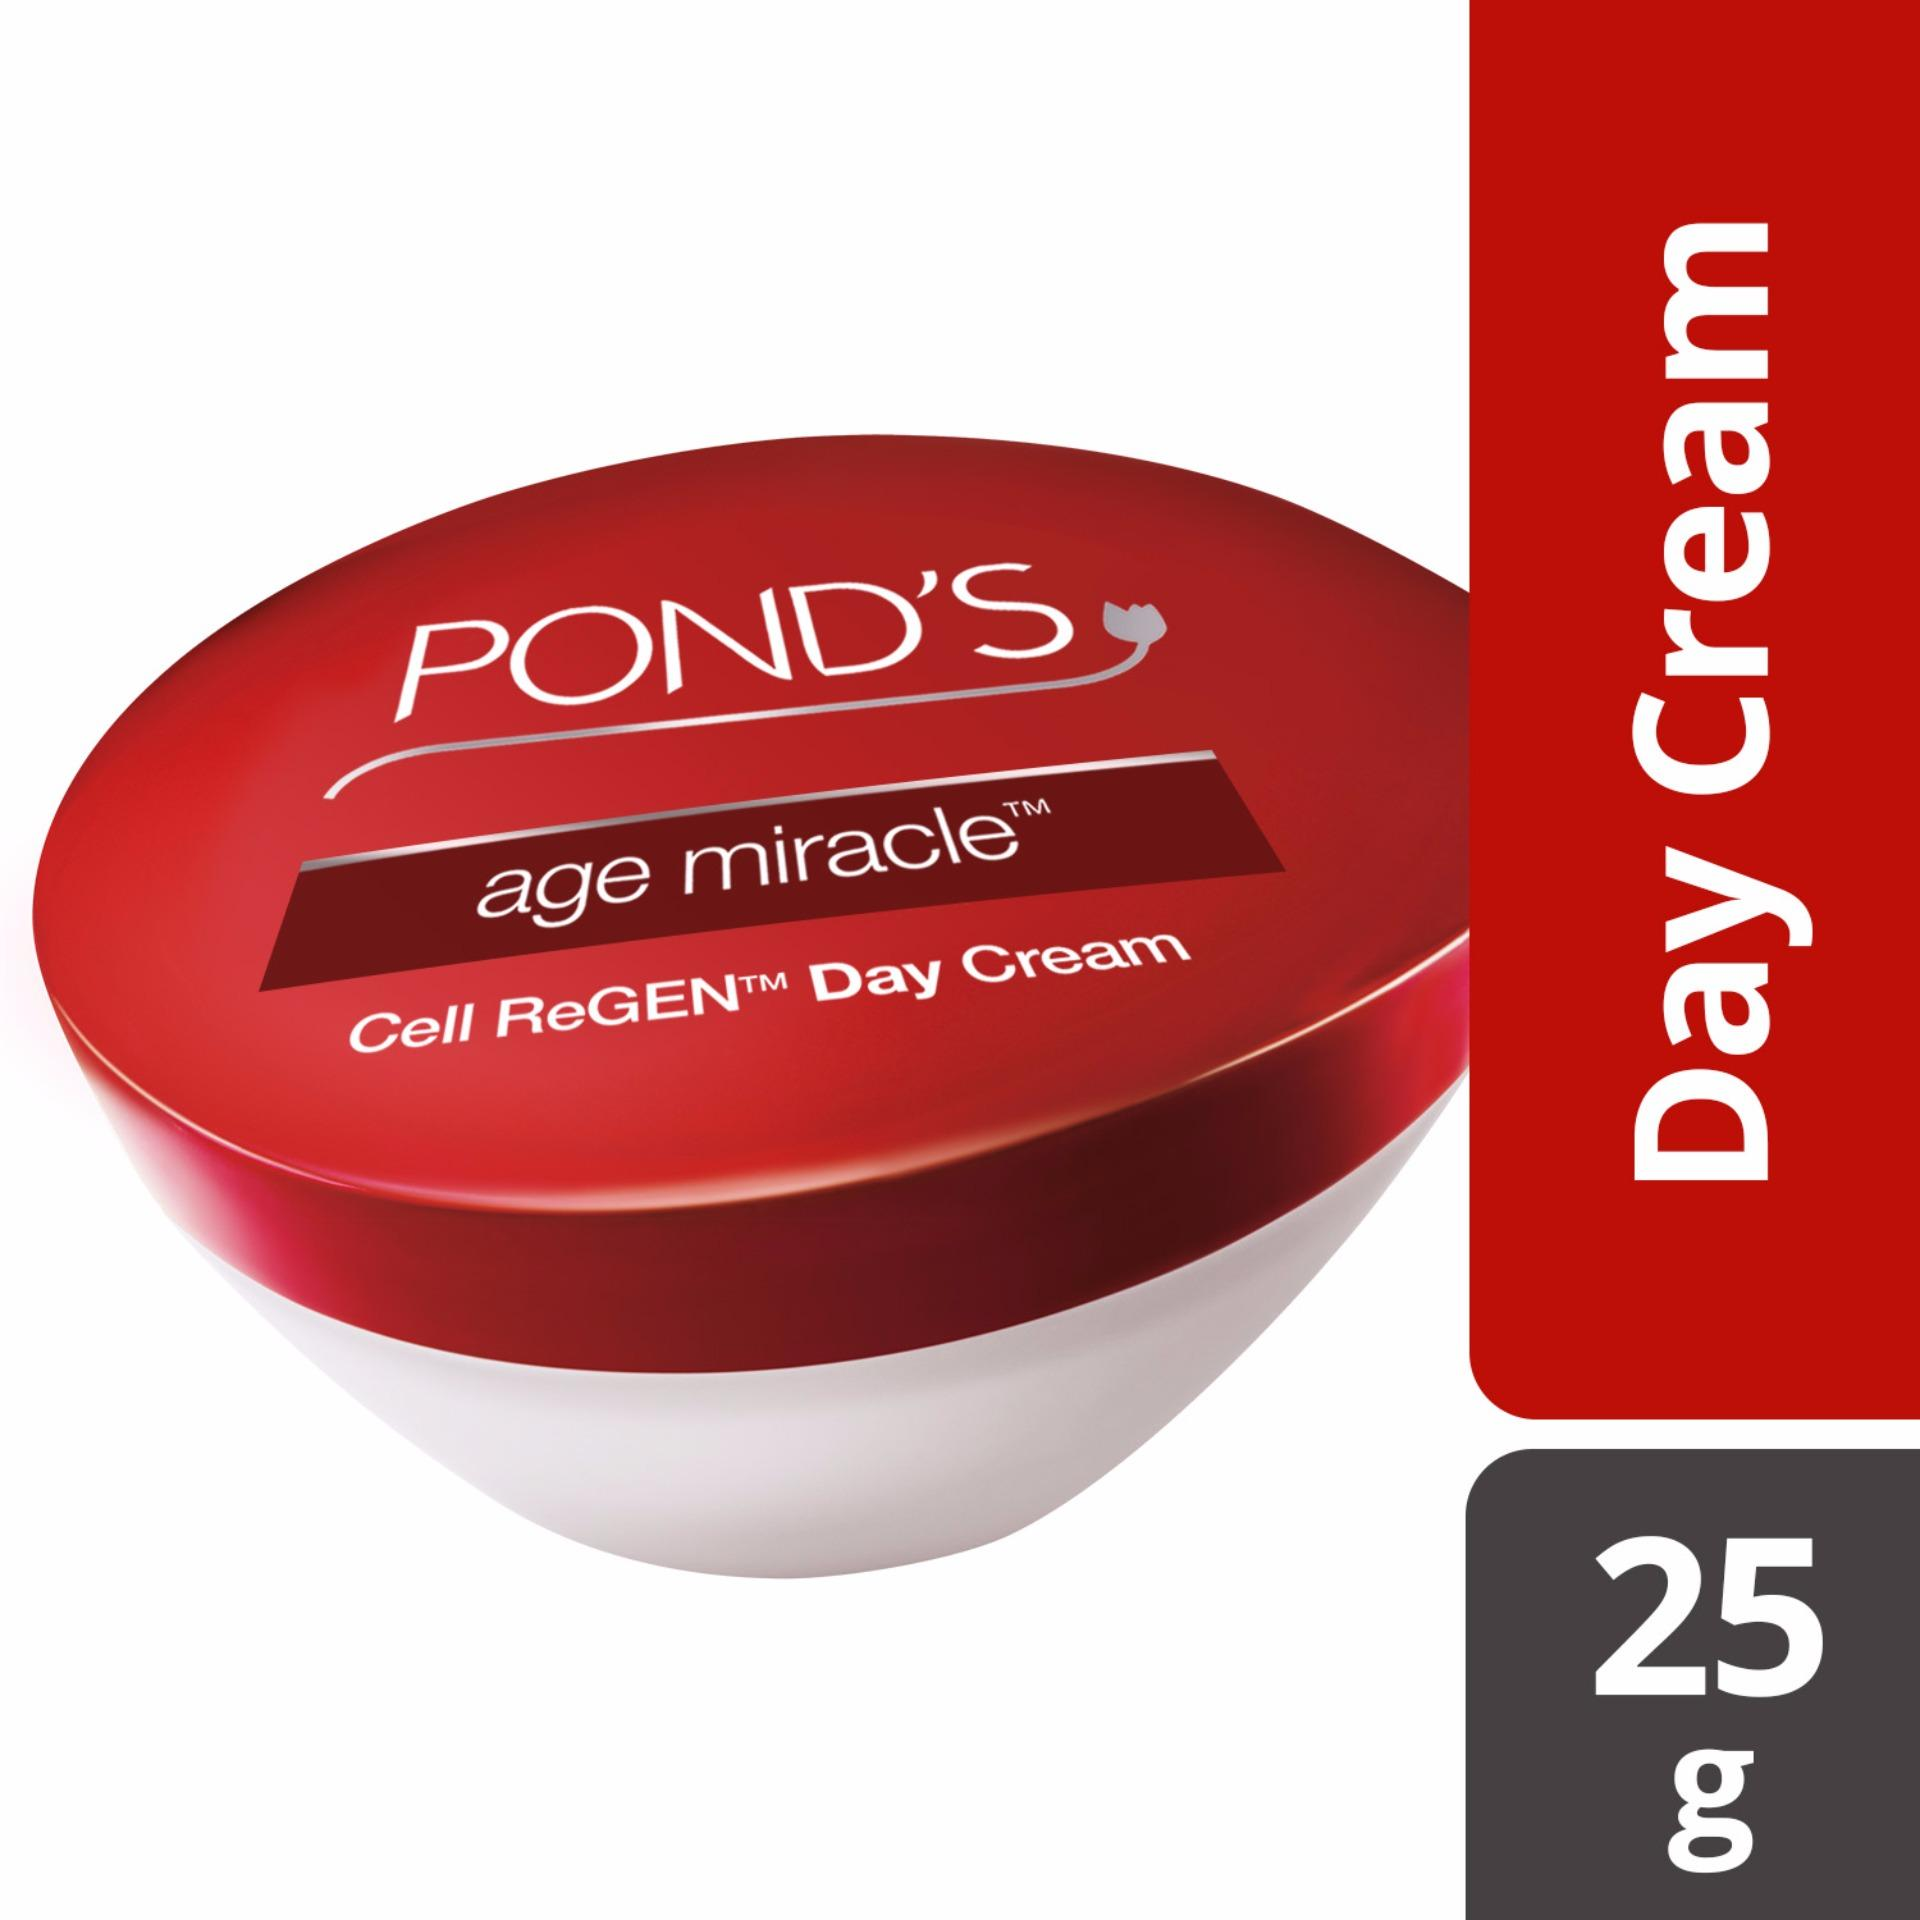 Philippines Ponds Age Miracle Day Cream 25g The Best Cheap